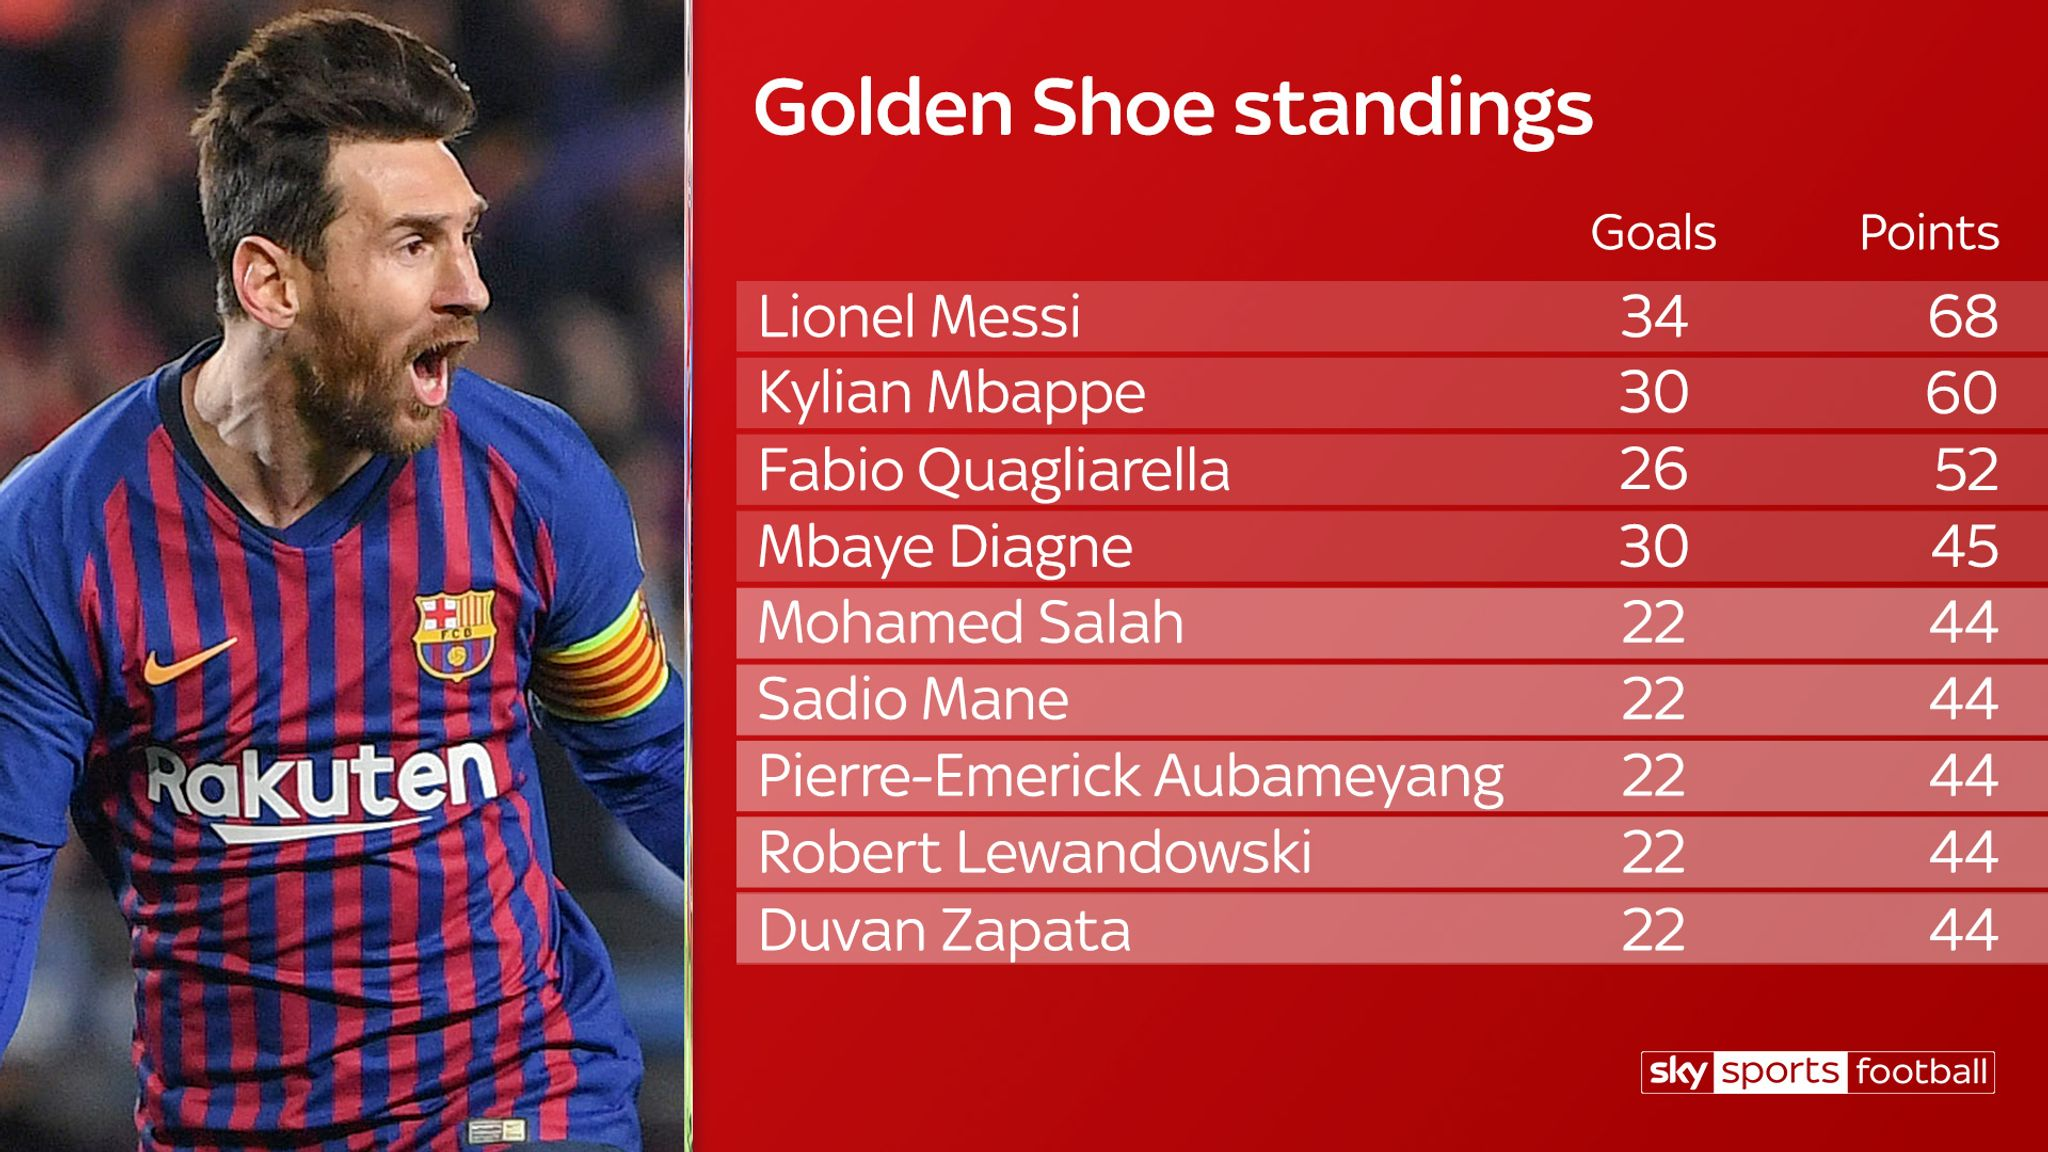 Who will win Golden Shoe? Lionel Messi and Kylian Mbappe in